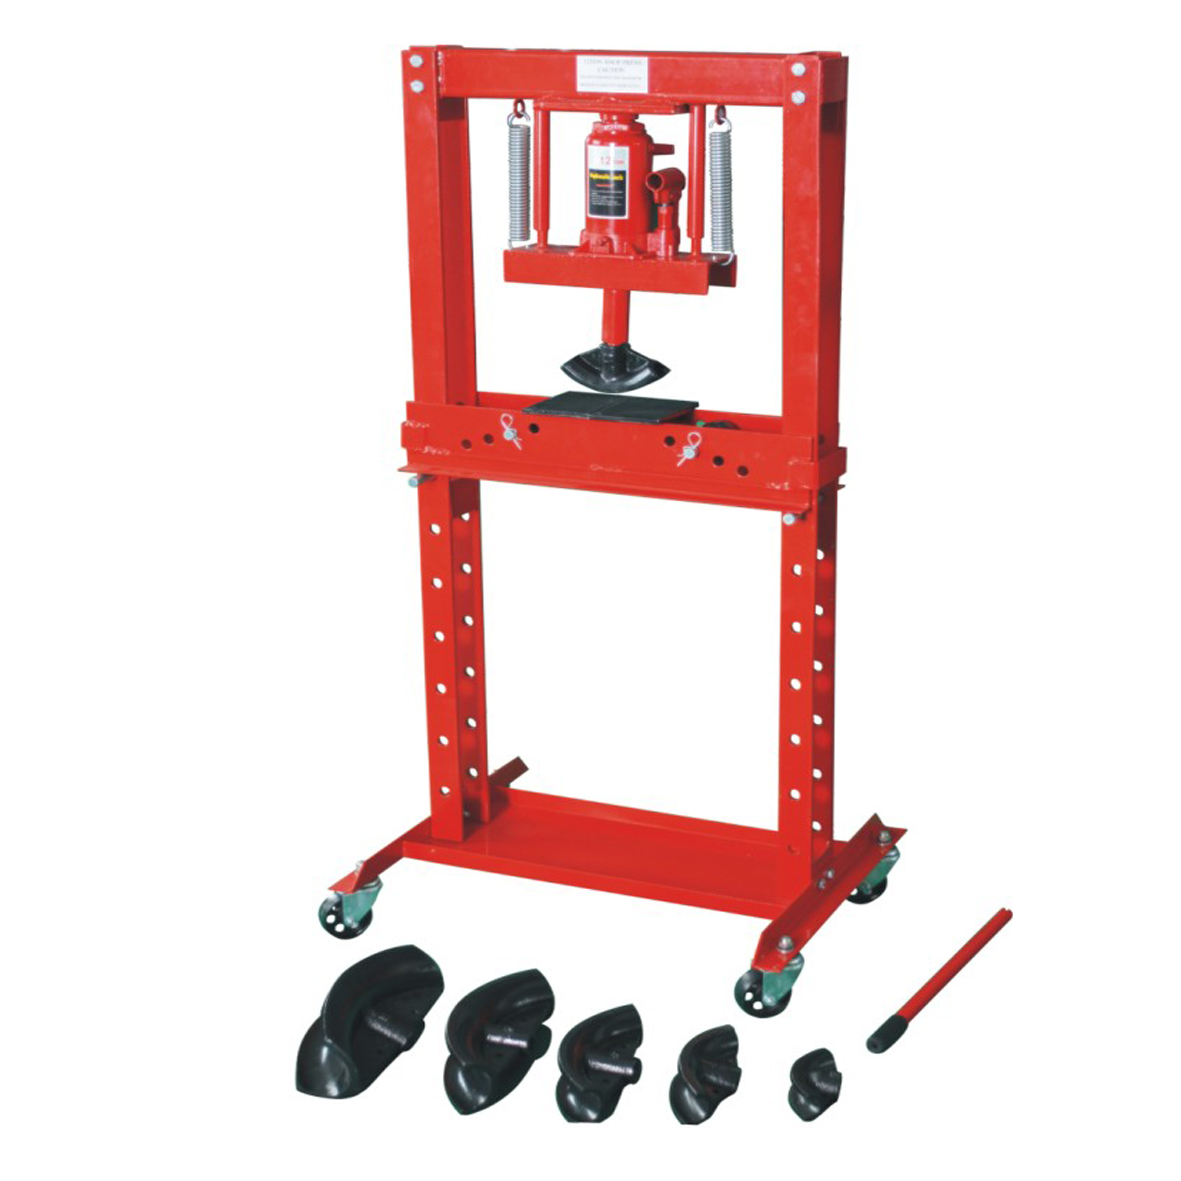 12ton benchtop hydraulic crimping tools shop press Featured Image